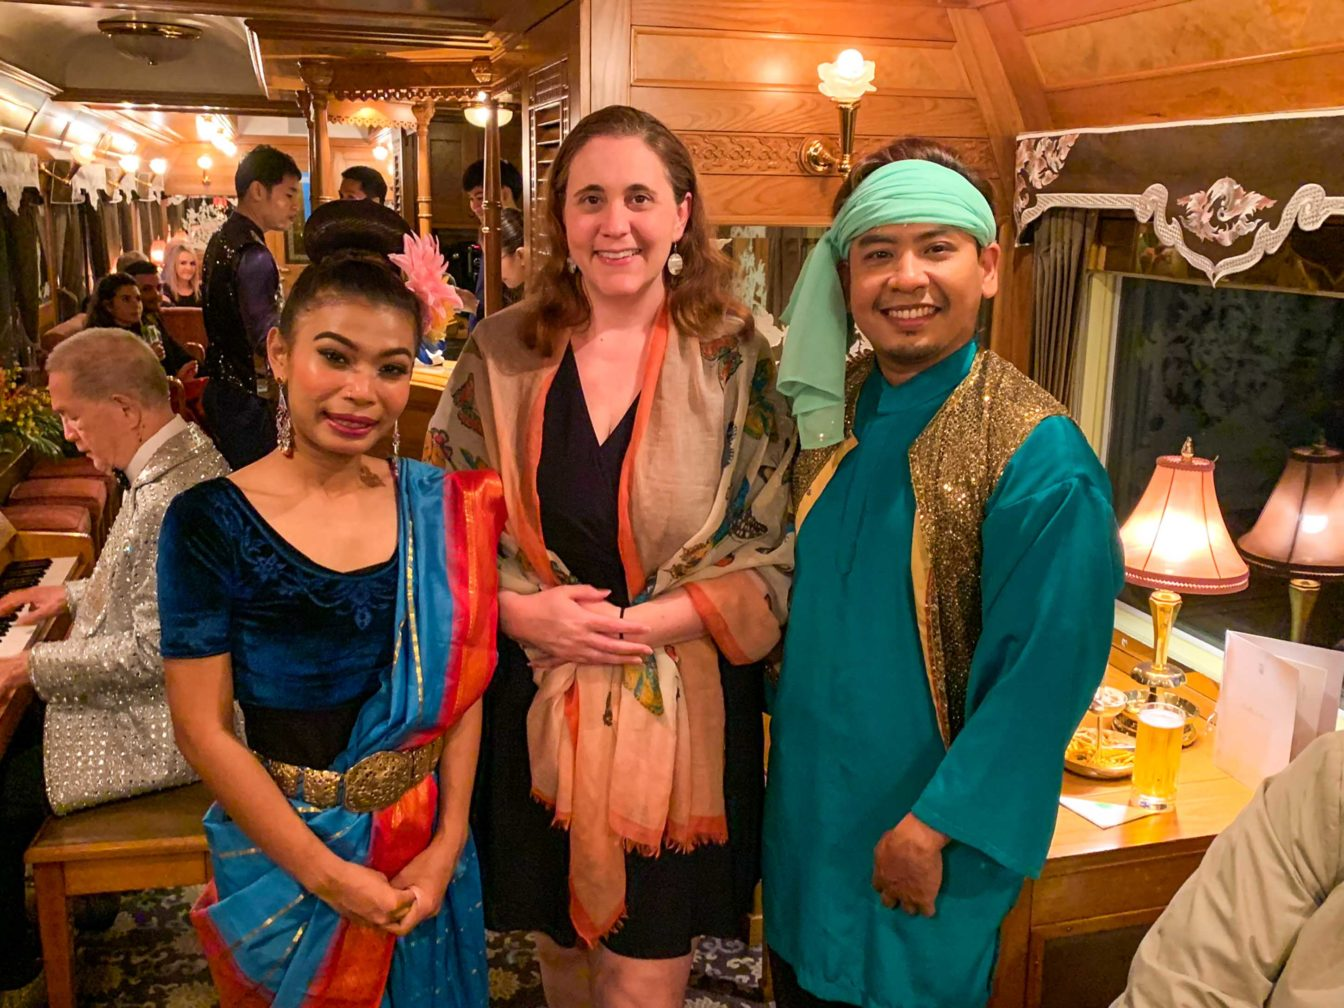 Guests dressed up for a celebration on the Eastern & Oriental Express